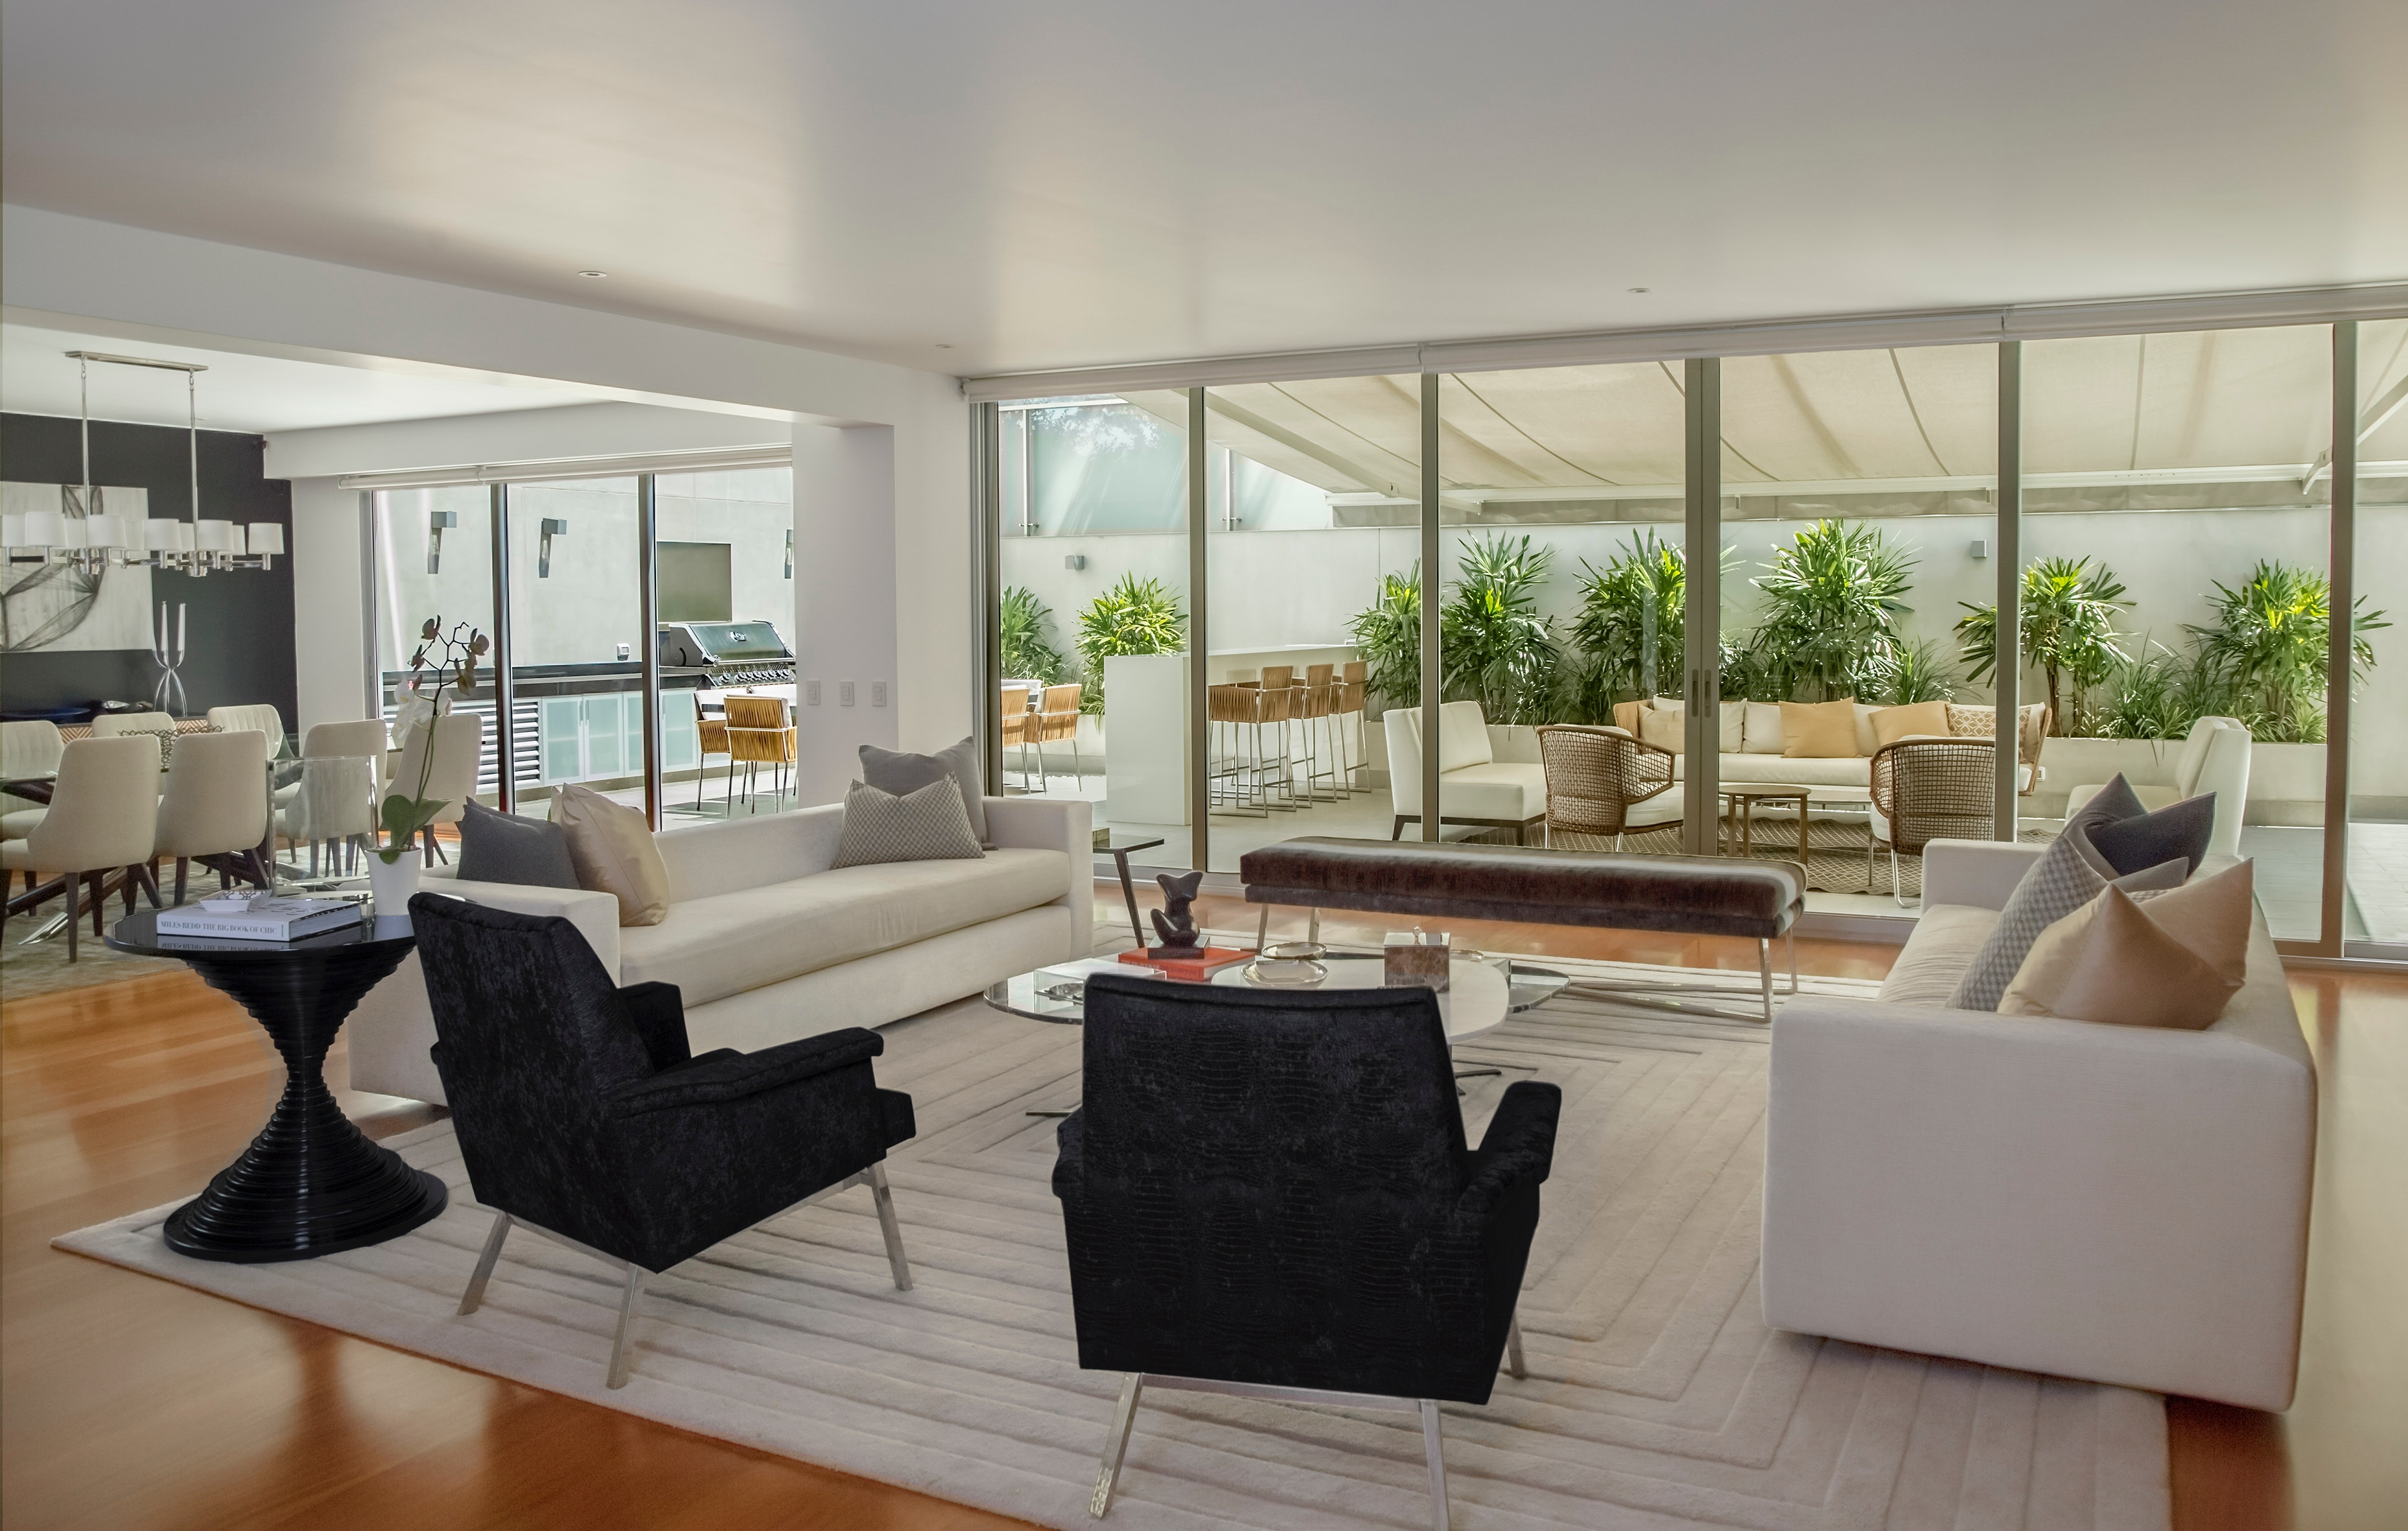 staged furniture in living room